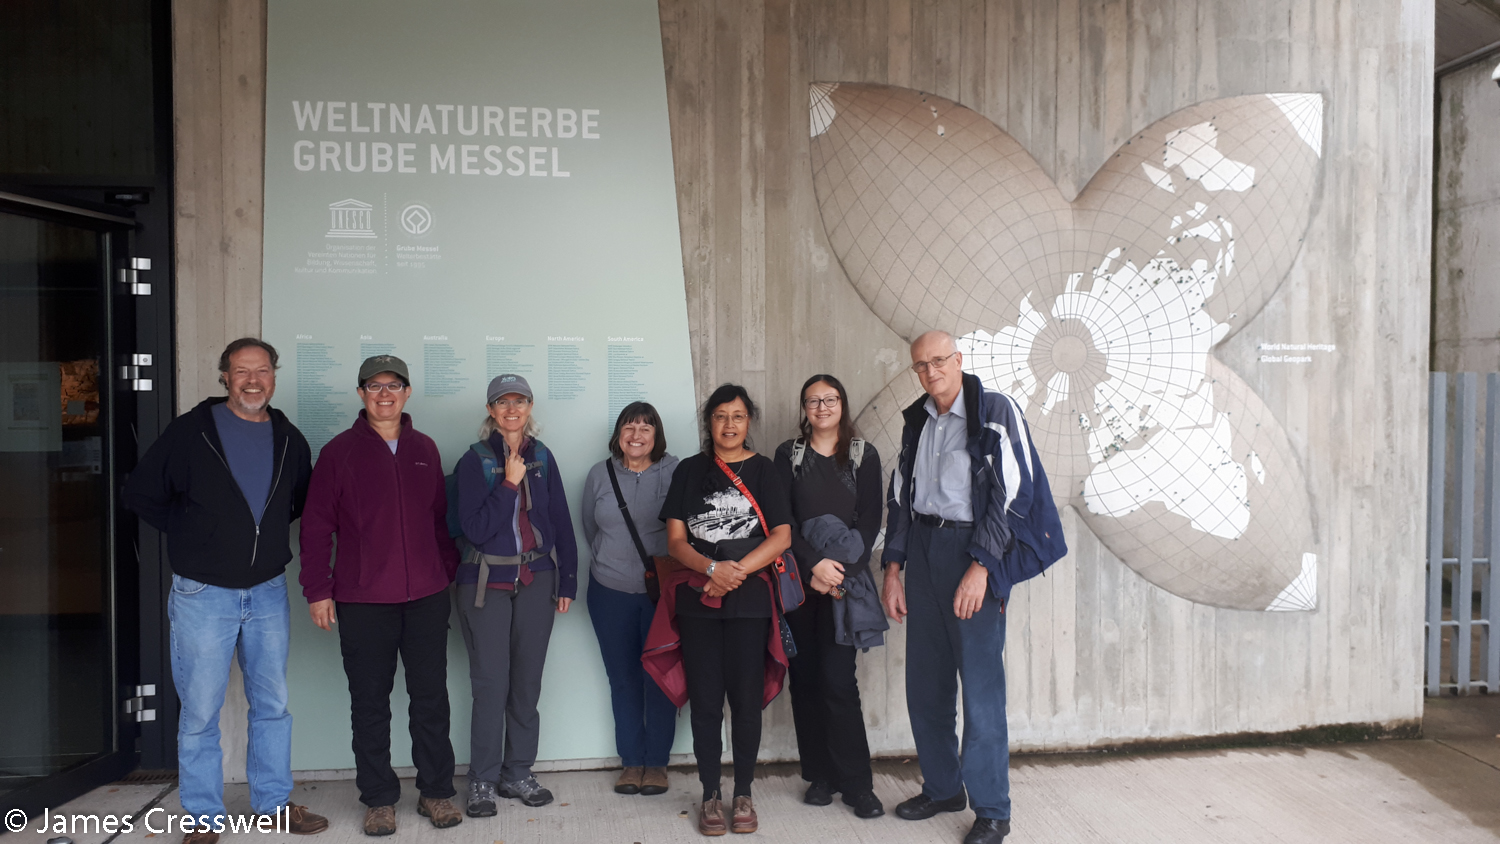 Group outside museum